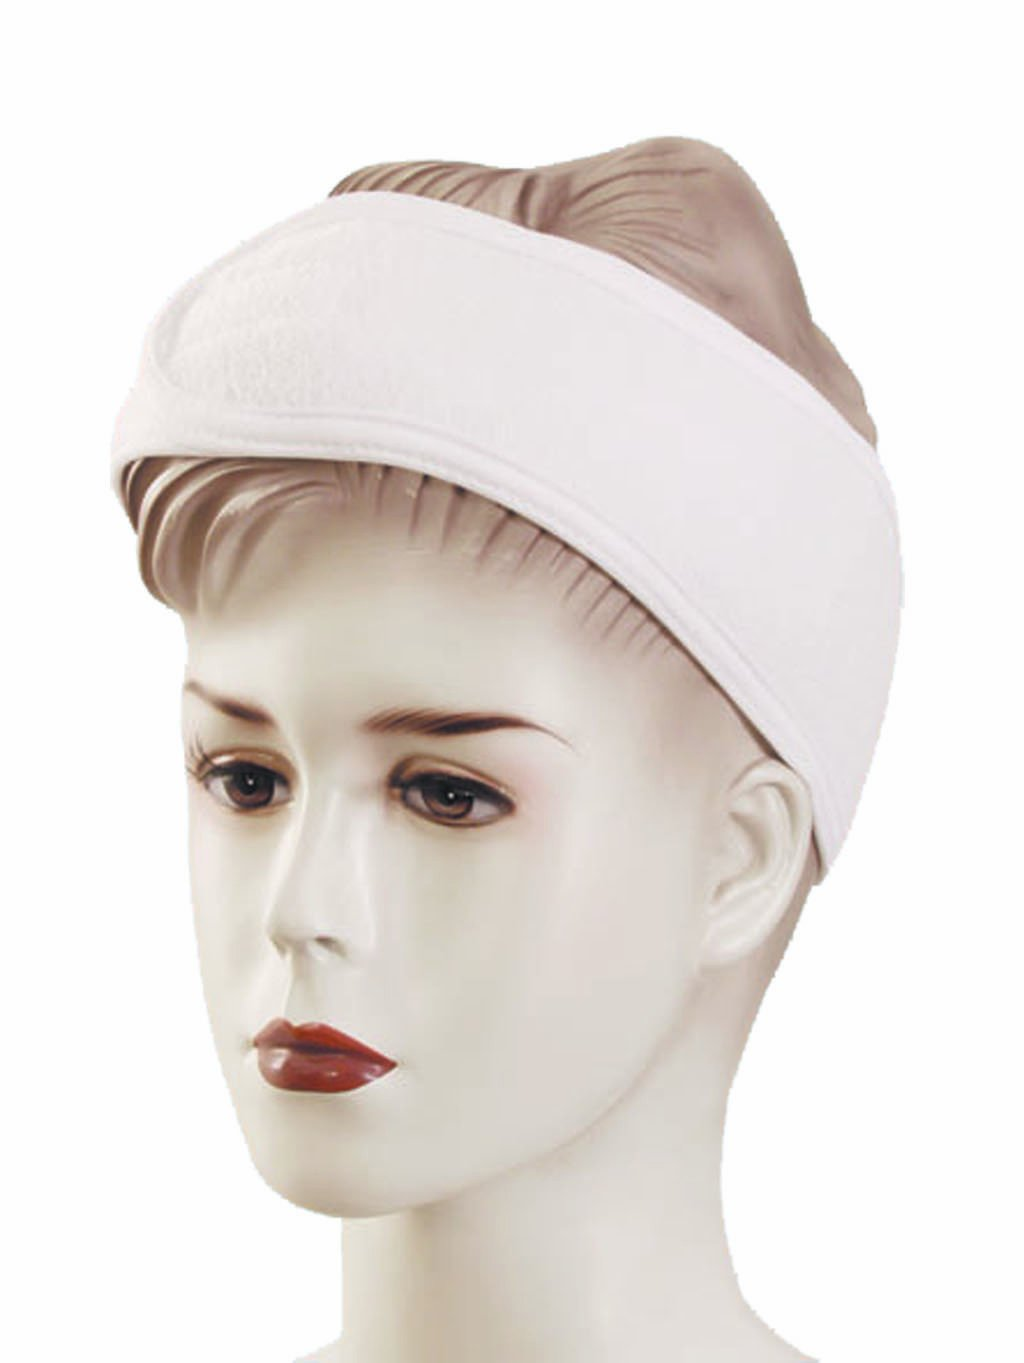 Amazon.com   Huini Toweling Headband (Thick Type) Head Band Salon Spa  Facial - 2pc in 1 Package White   Facial Steamers   Beauty fb605b61dfe